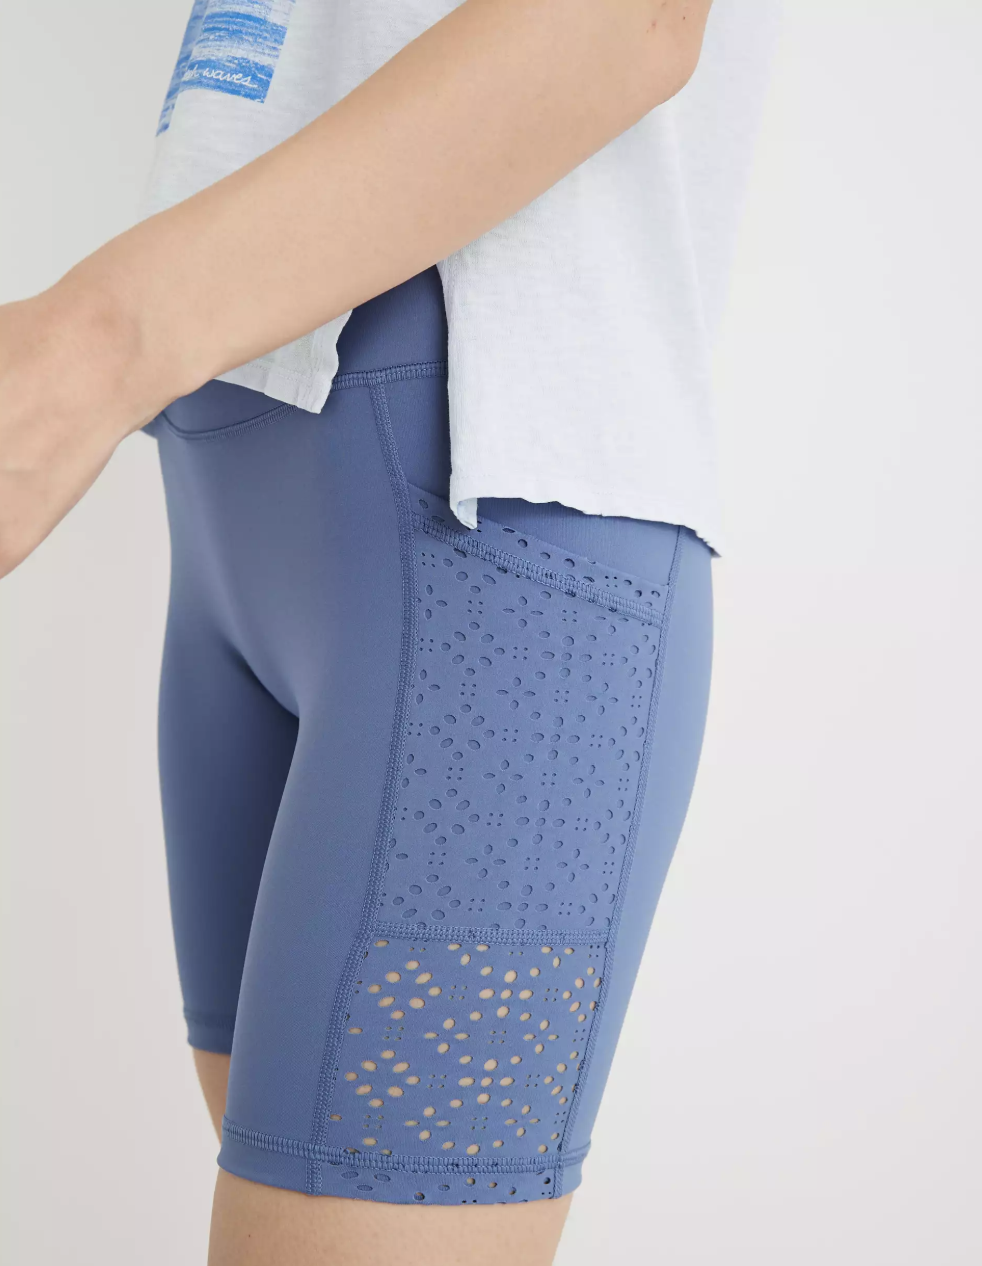 A model in pale blue bike shorts with laser cut detailing on the side pockets